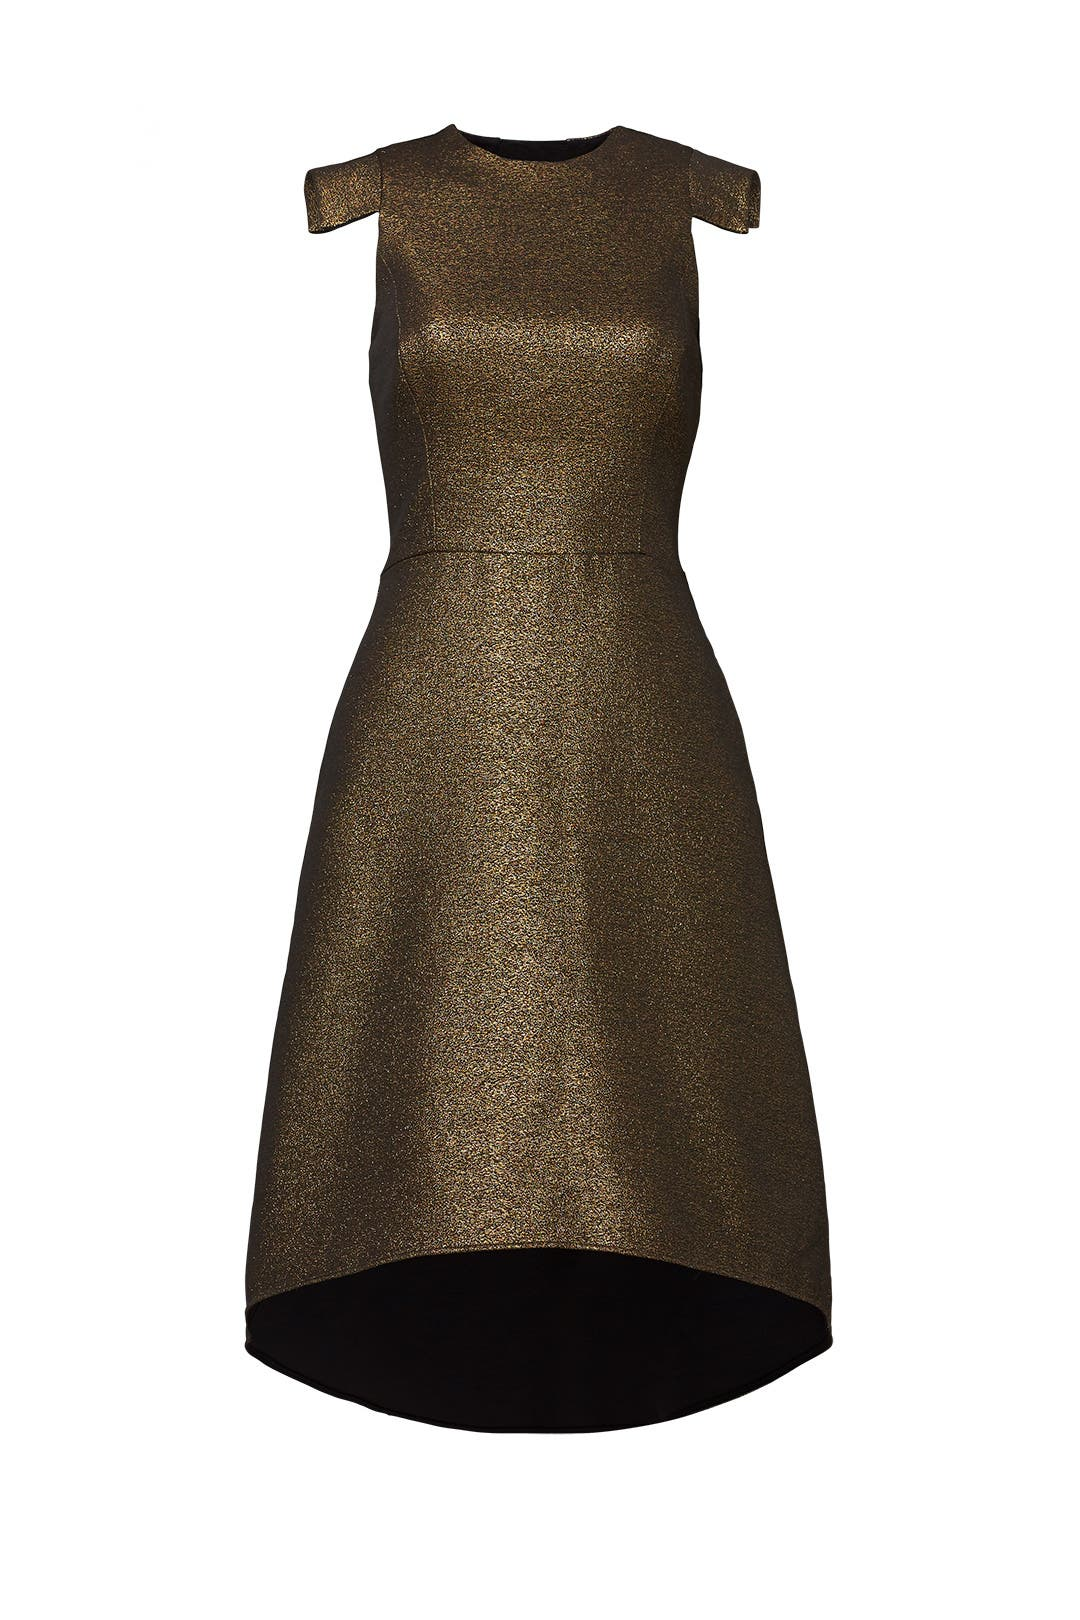 Antique Gold Jacquard Dress by Halston Heritage for $59   Rent the ...